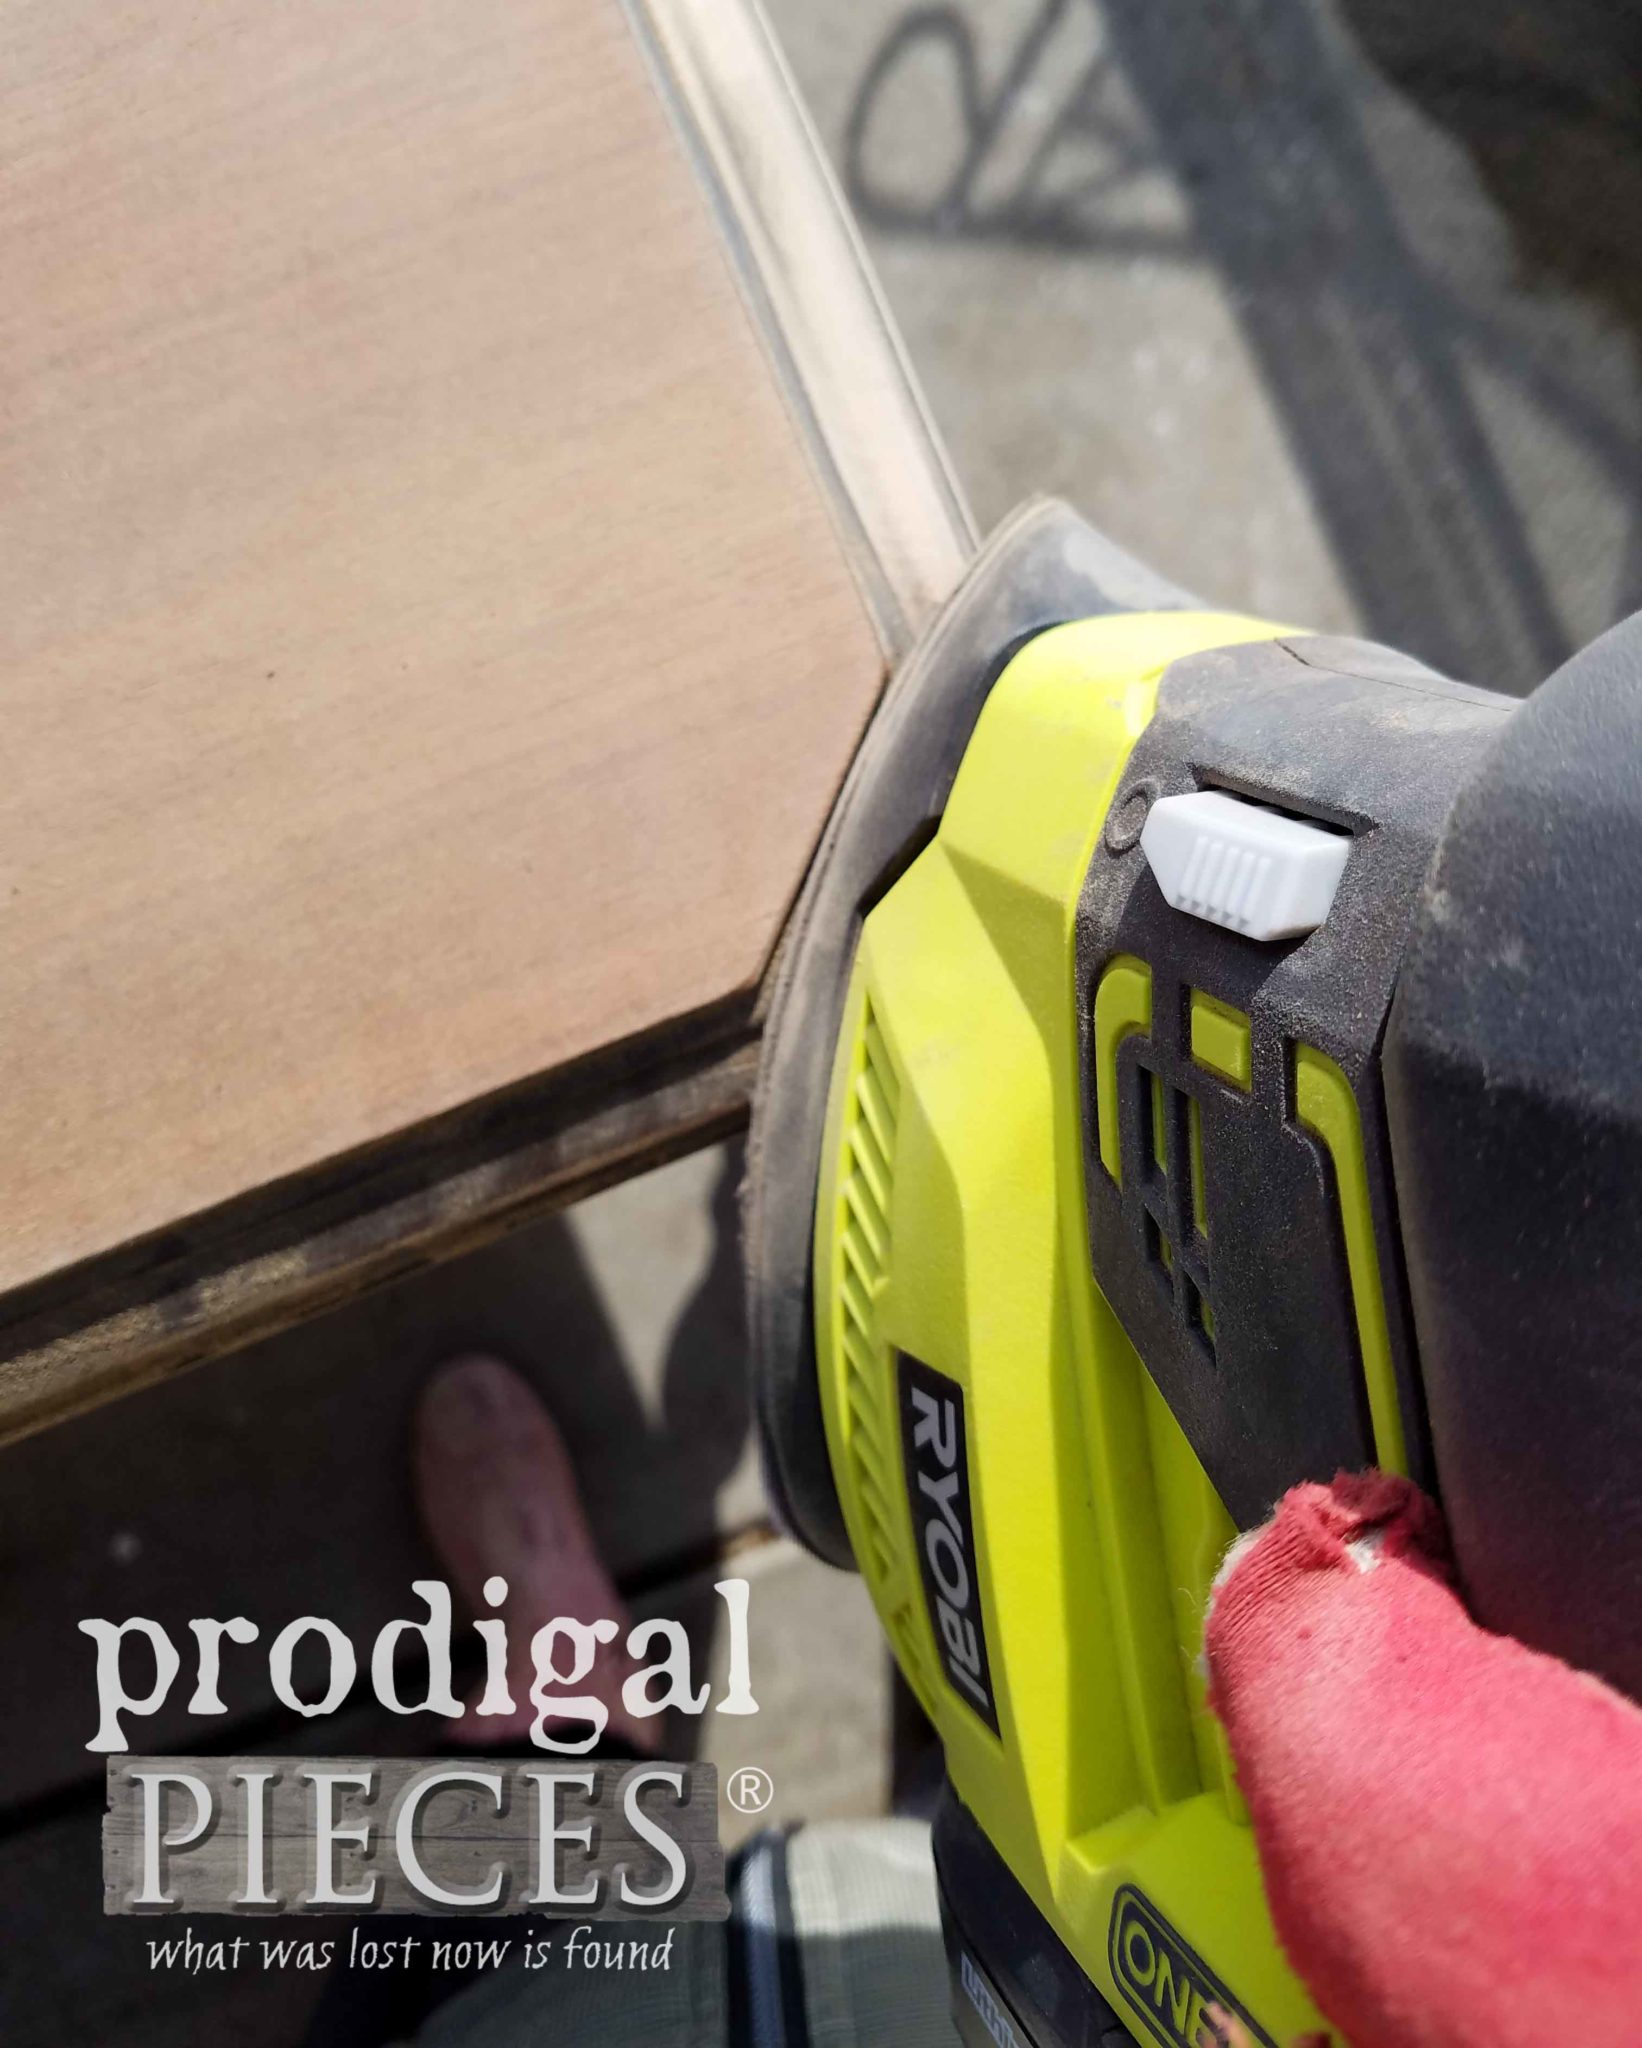 Ryobi Corner Cat Sander for Detailed Sanding | prodigalpieces.com